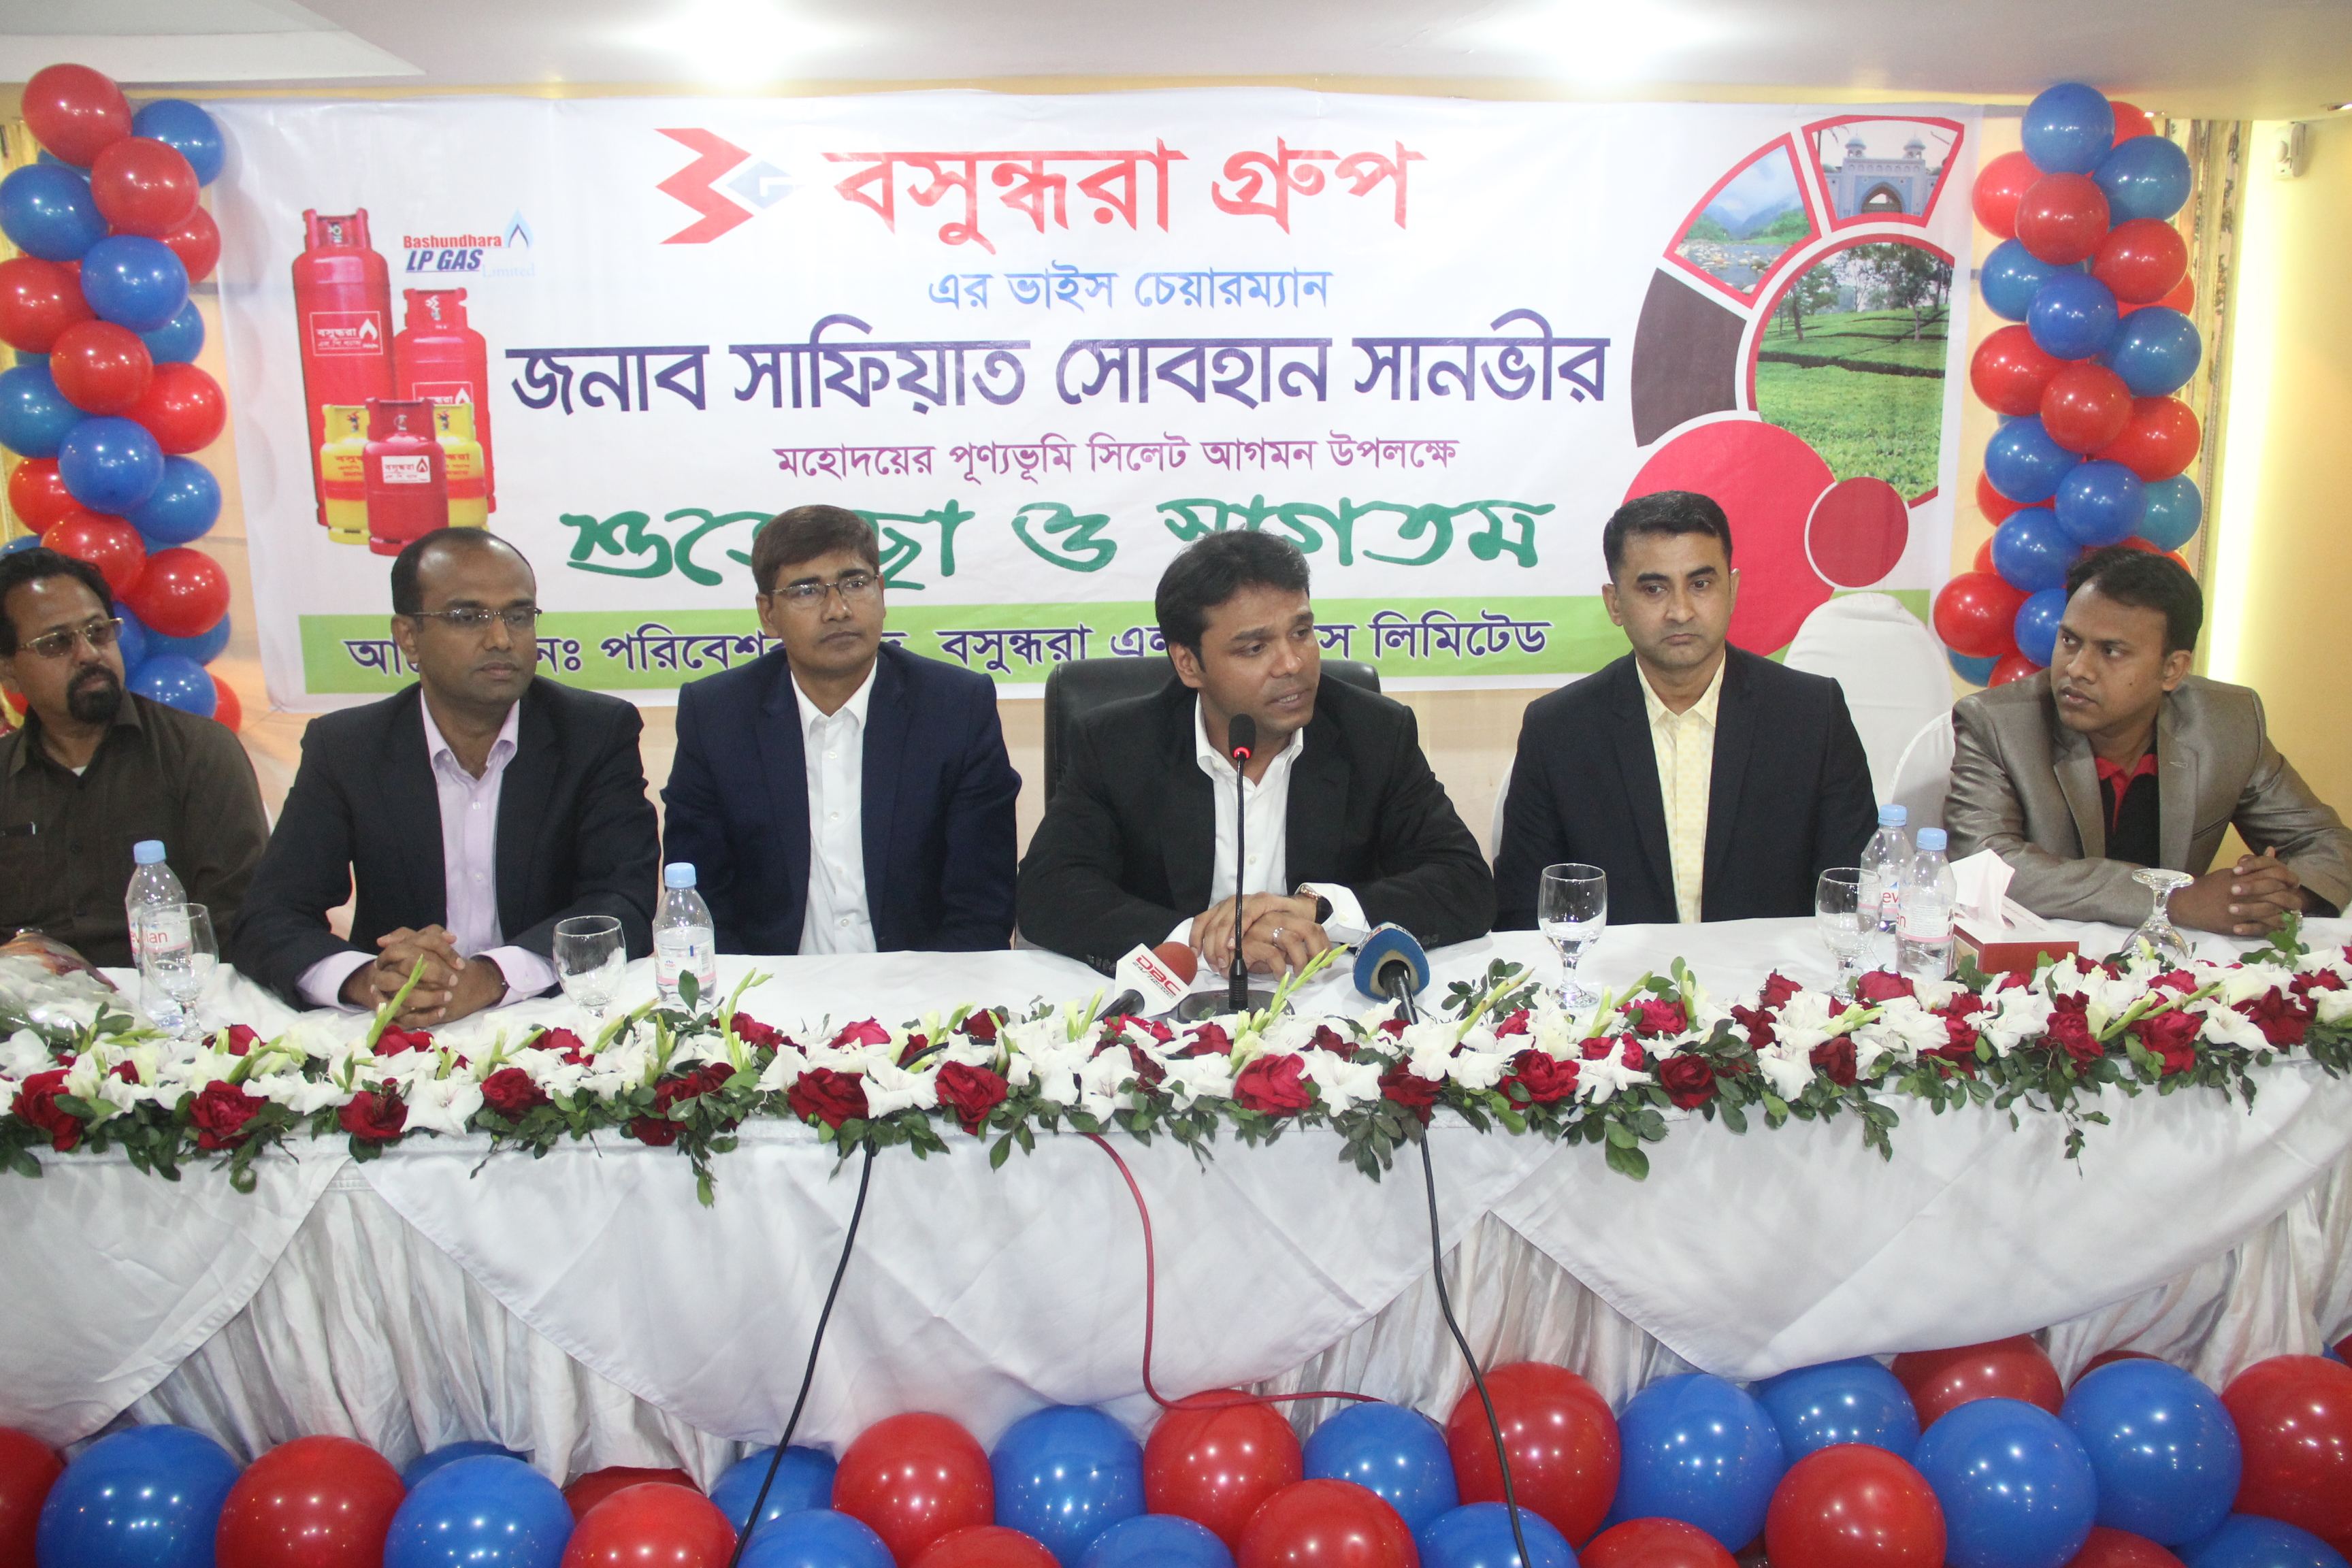 BG-to-set-up-LP-gas-plant-in-Dhaka-2017-01-22